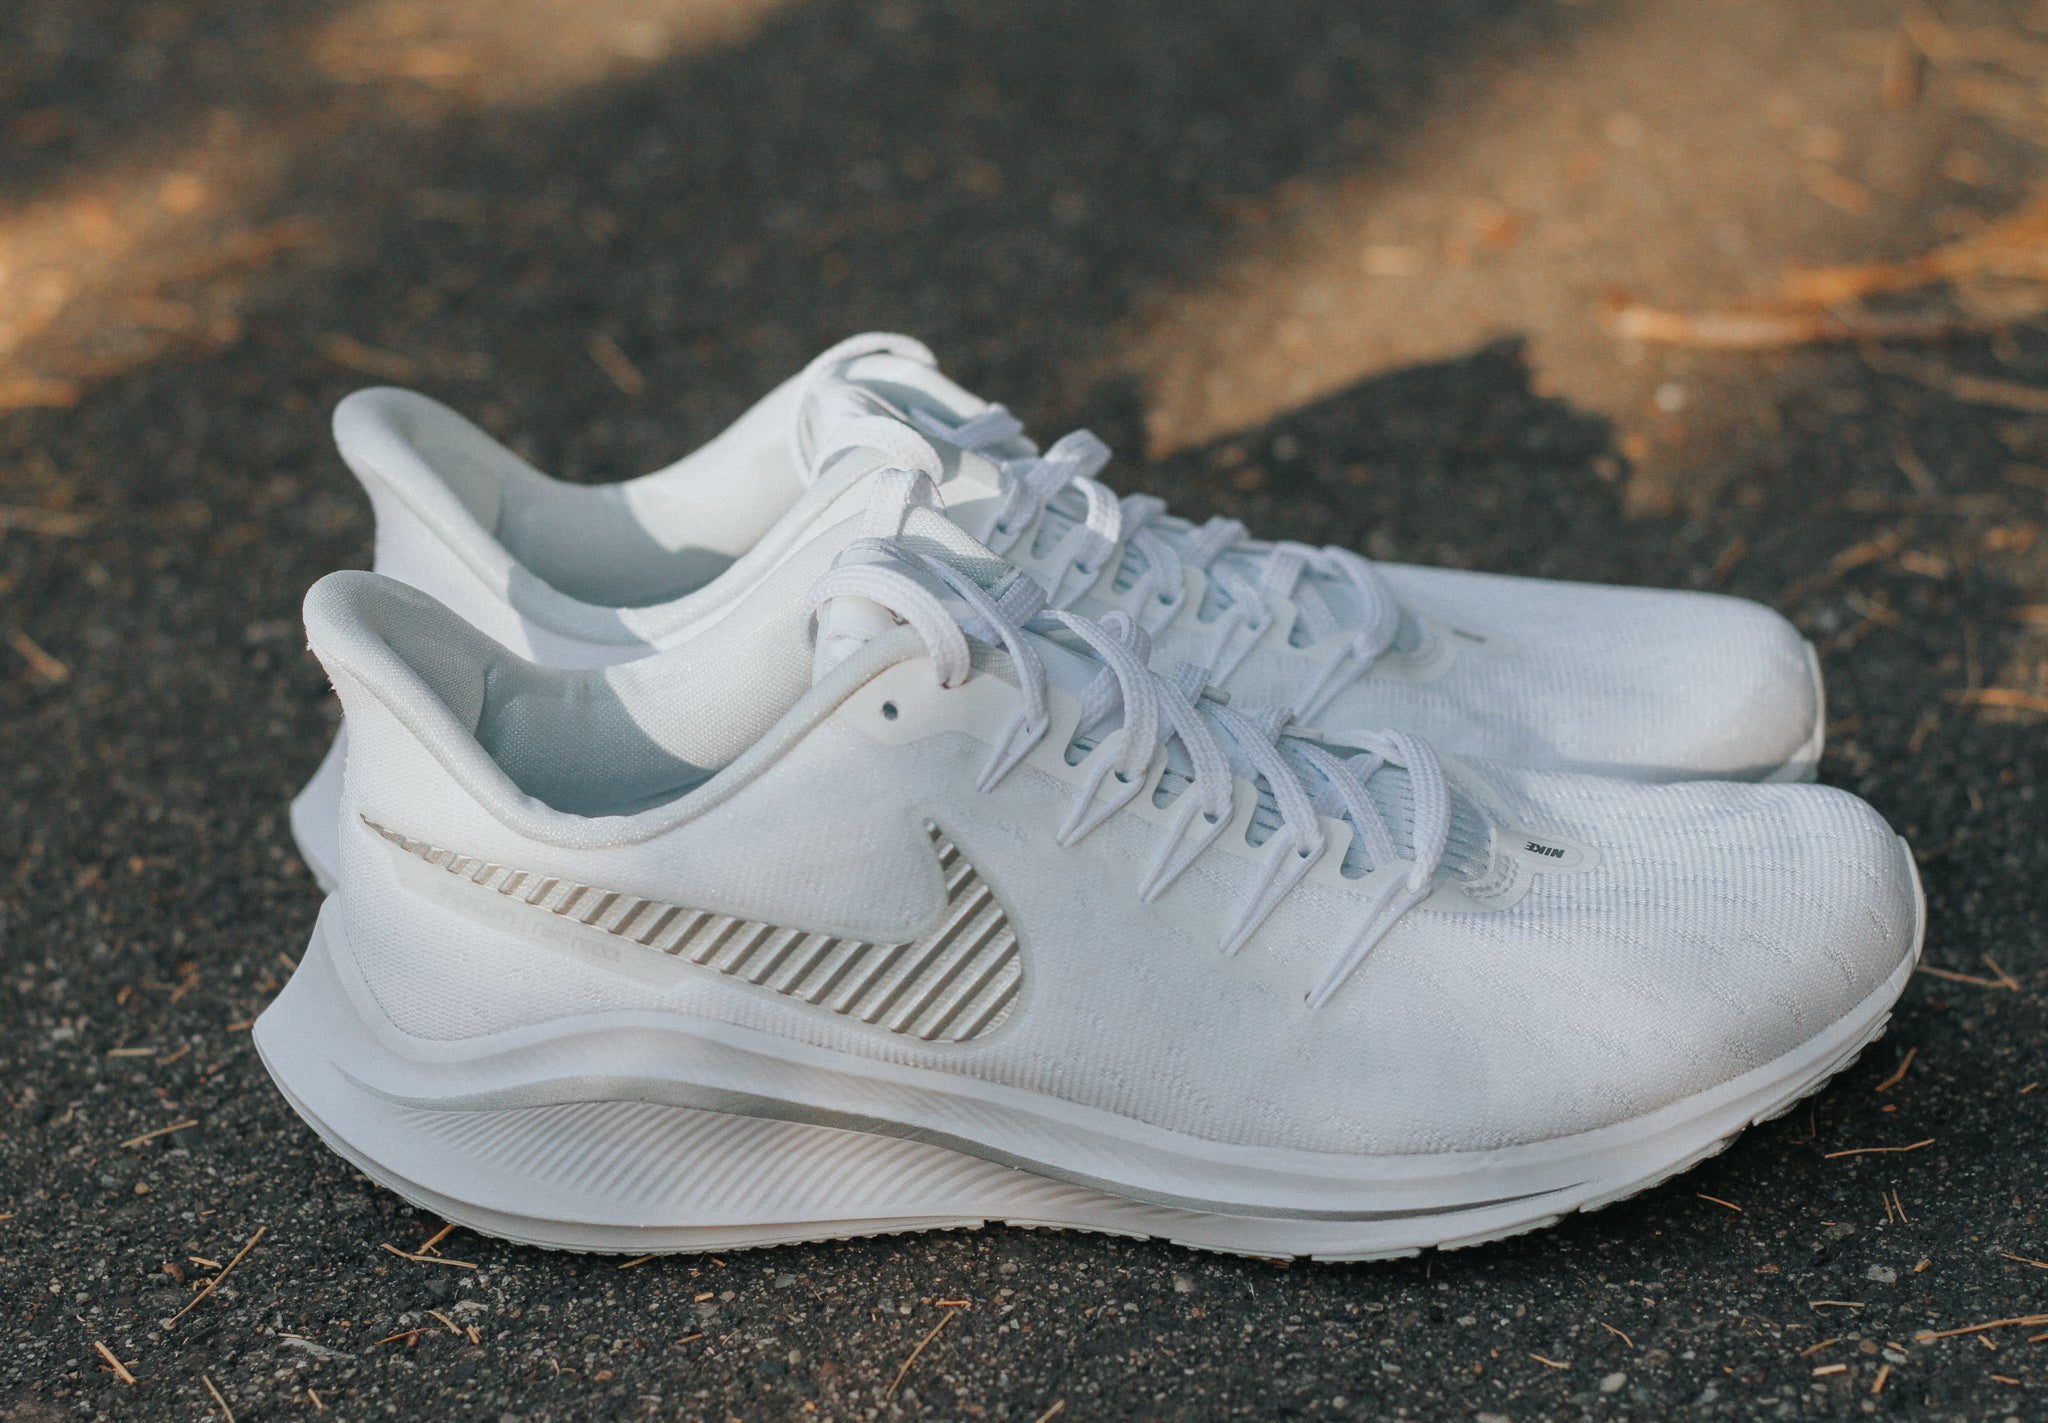 Women's Air Zoom Vomero 14 (102 - white/aura/metallic silver)